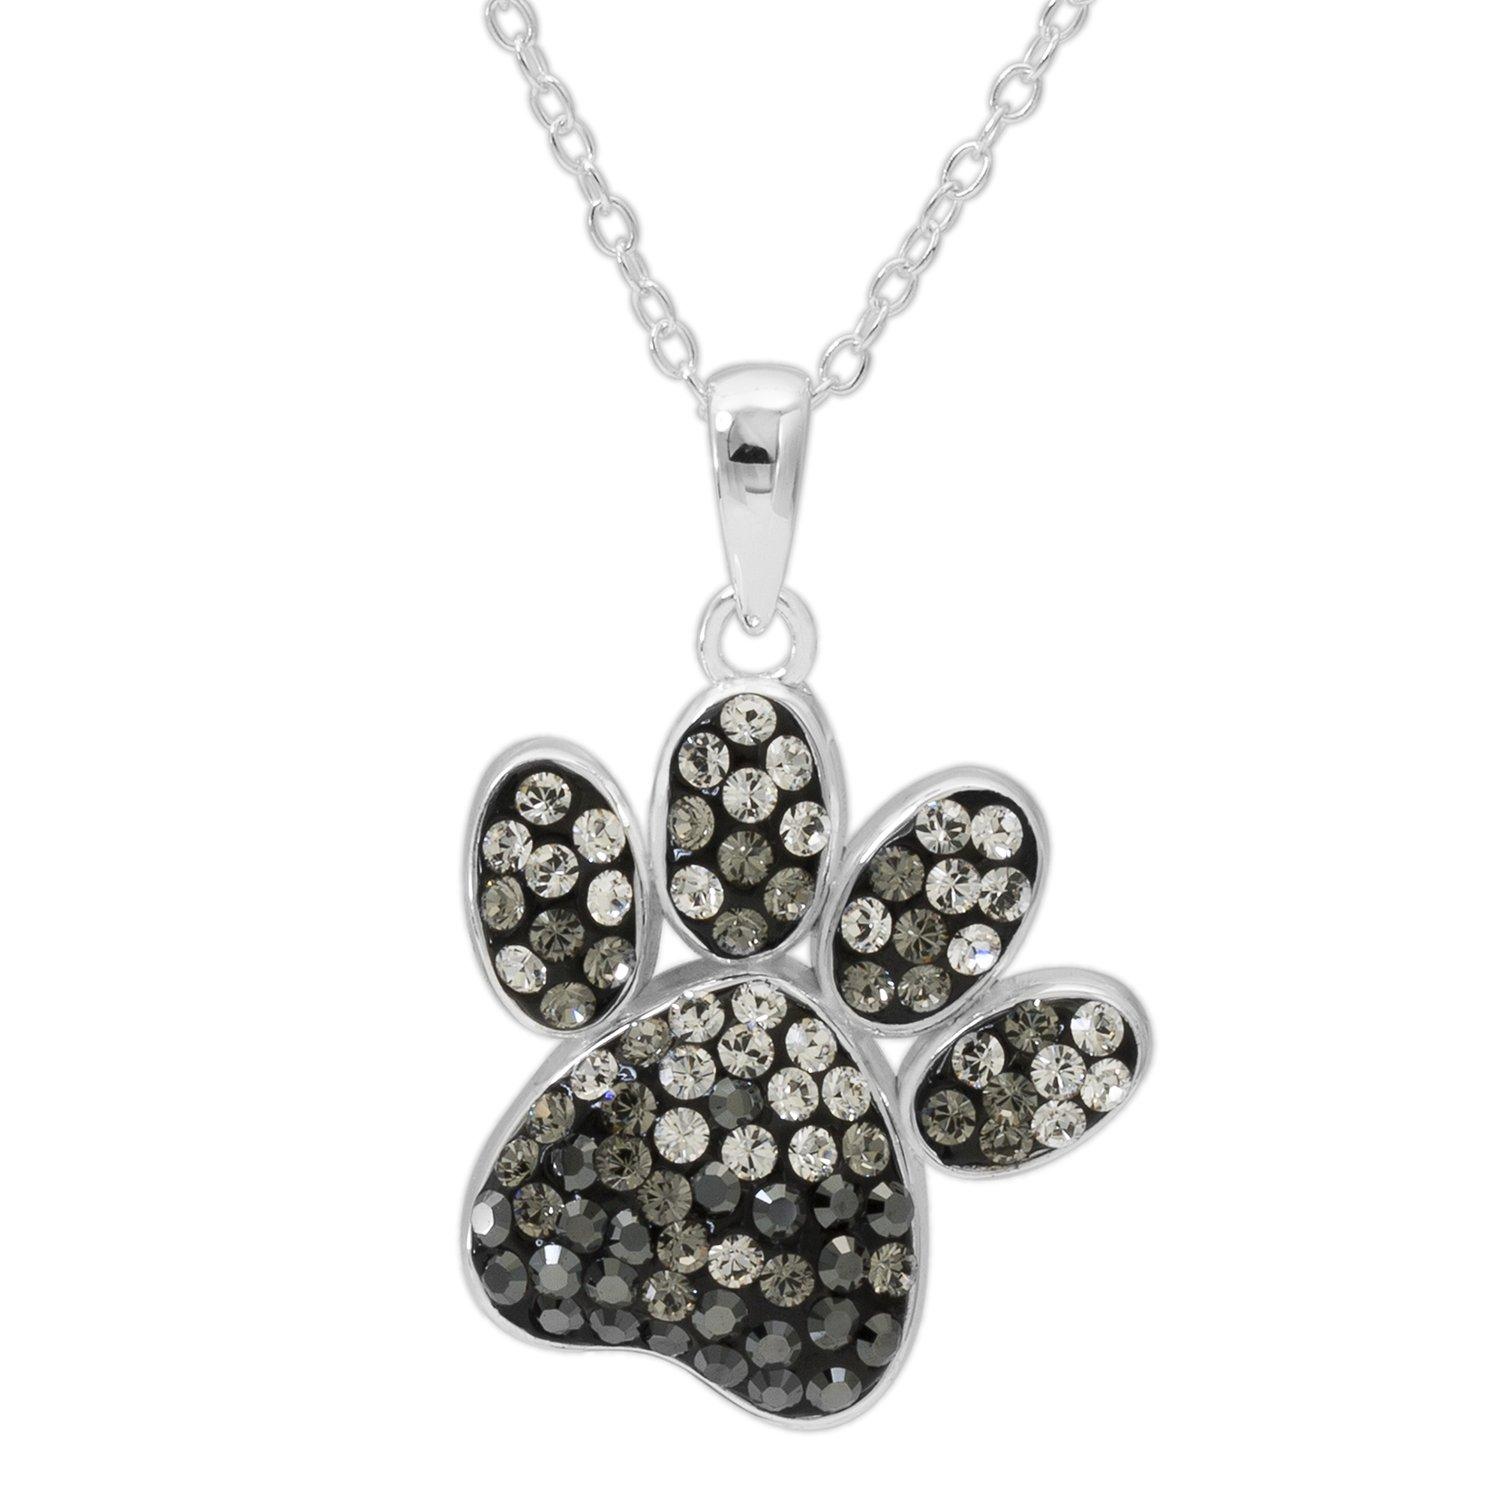 Crystalogy Sterling Silver Swarovski Crystal Dog Paw Animal Pendant Necklace for Women, 18''